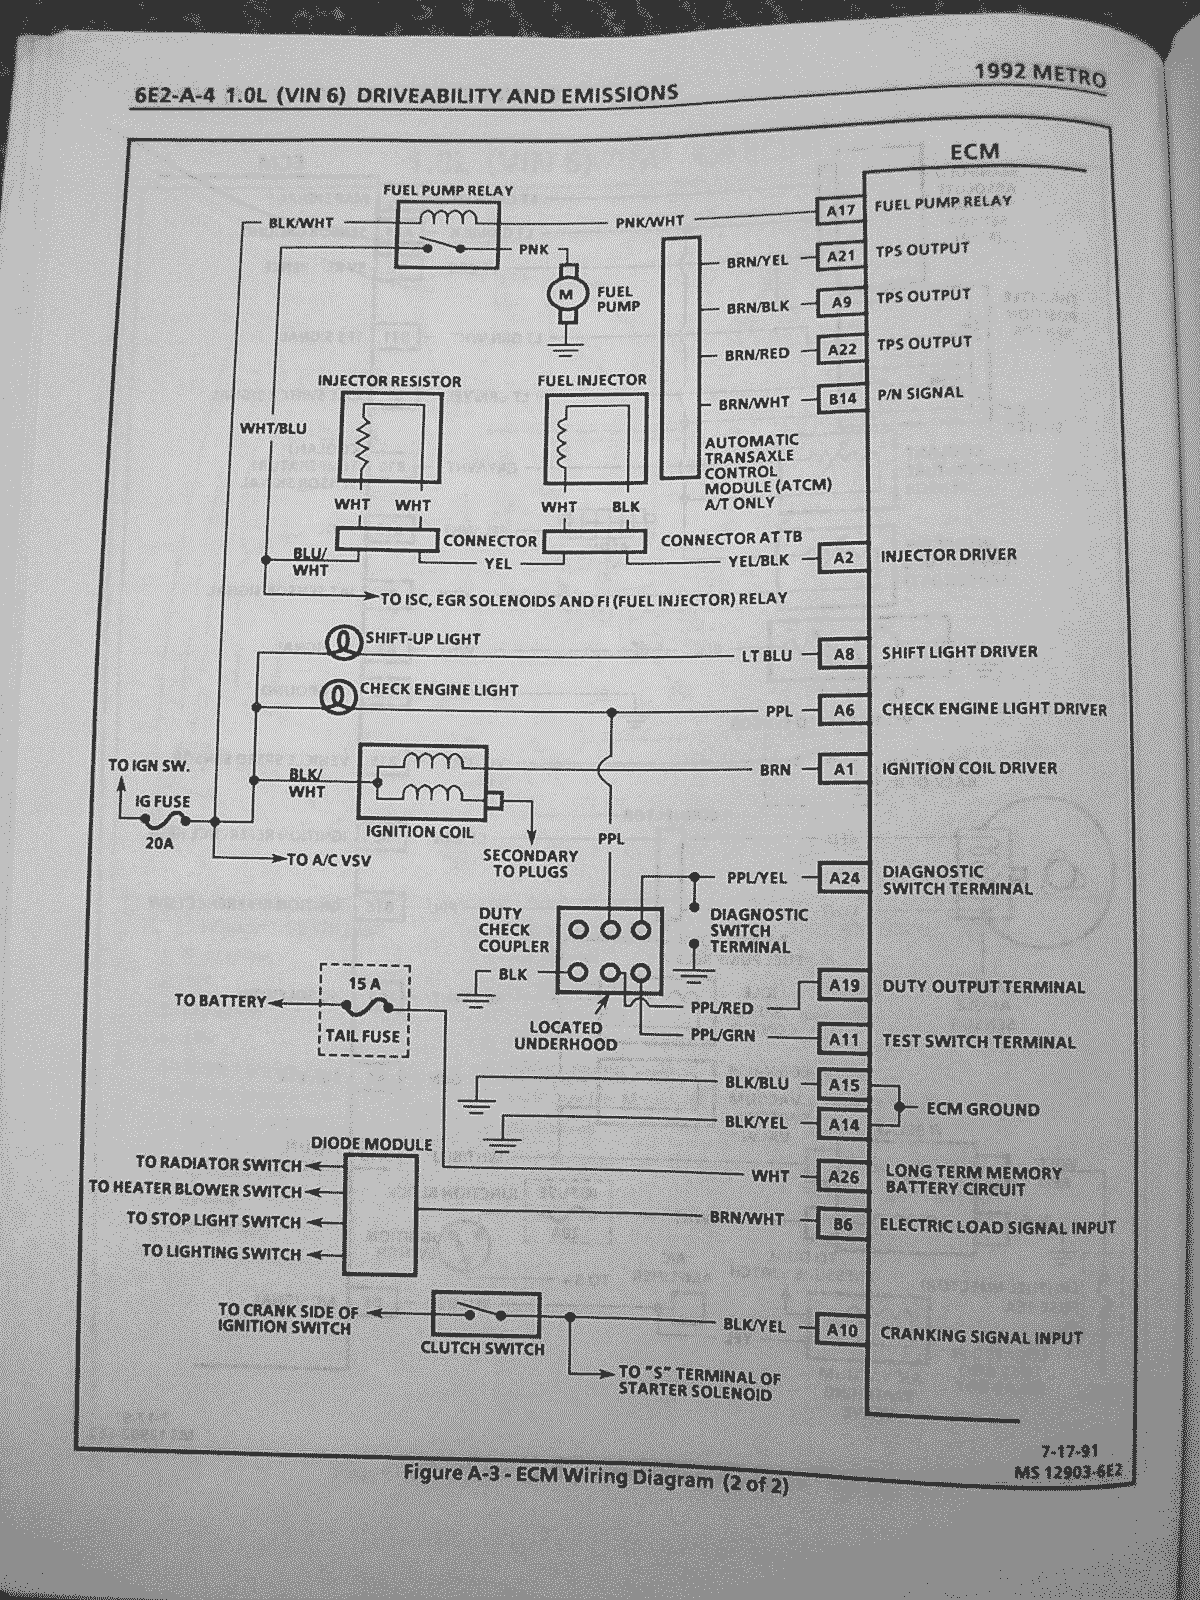 6e2 a 4 geo metro and suzuki swift wiring diagrams metroxfi com 1995 geo metro fuse box diagram at bakdesigns.co